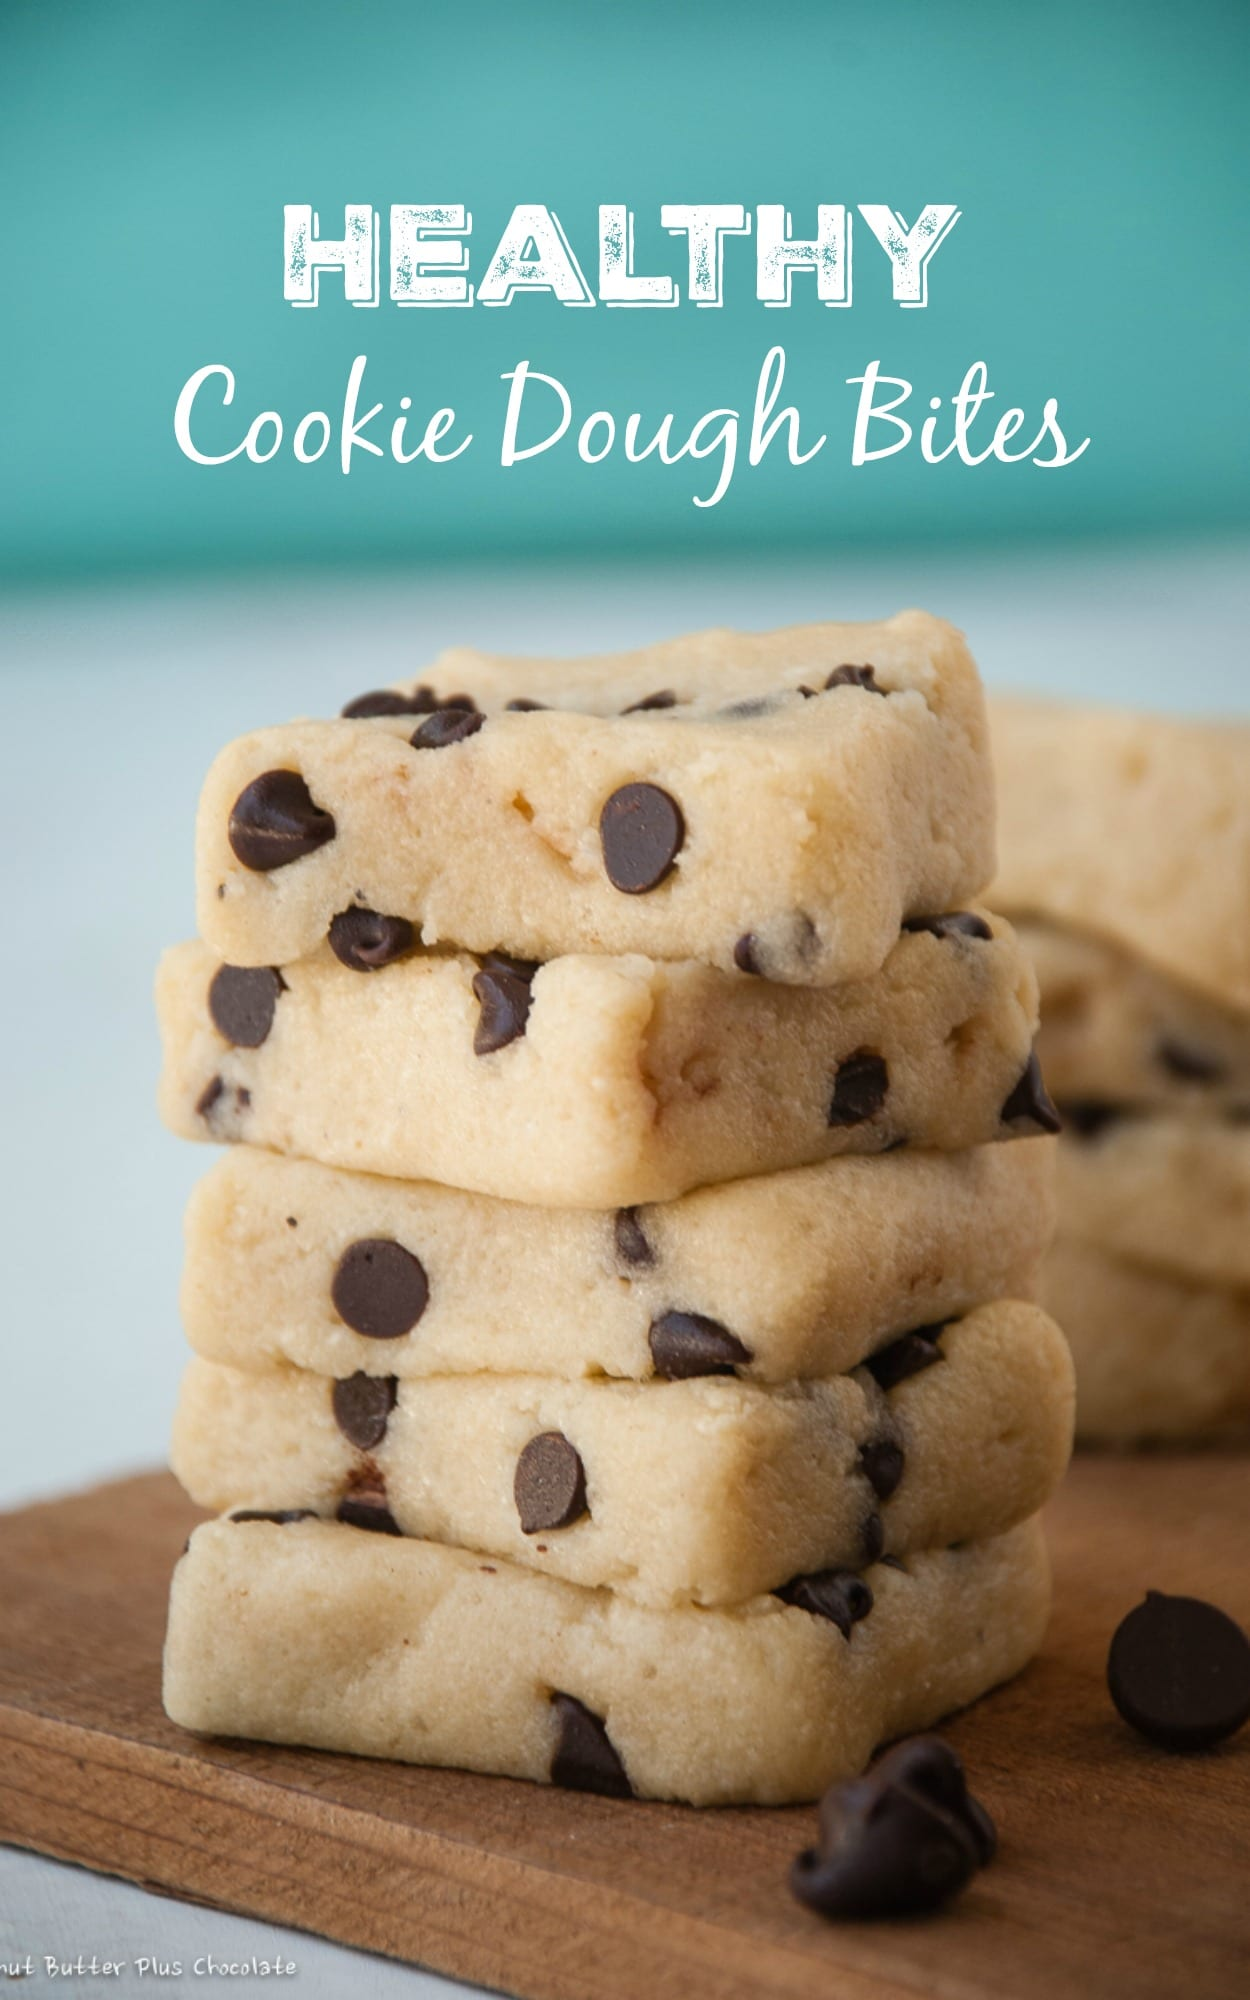 Healthy Chocolate Chip Cookie Dough Bites